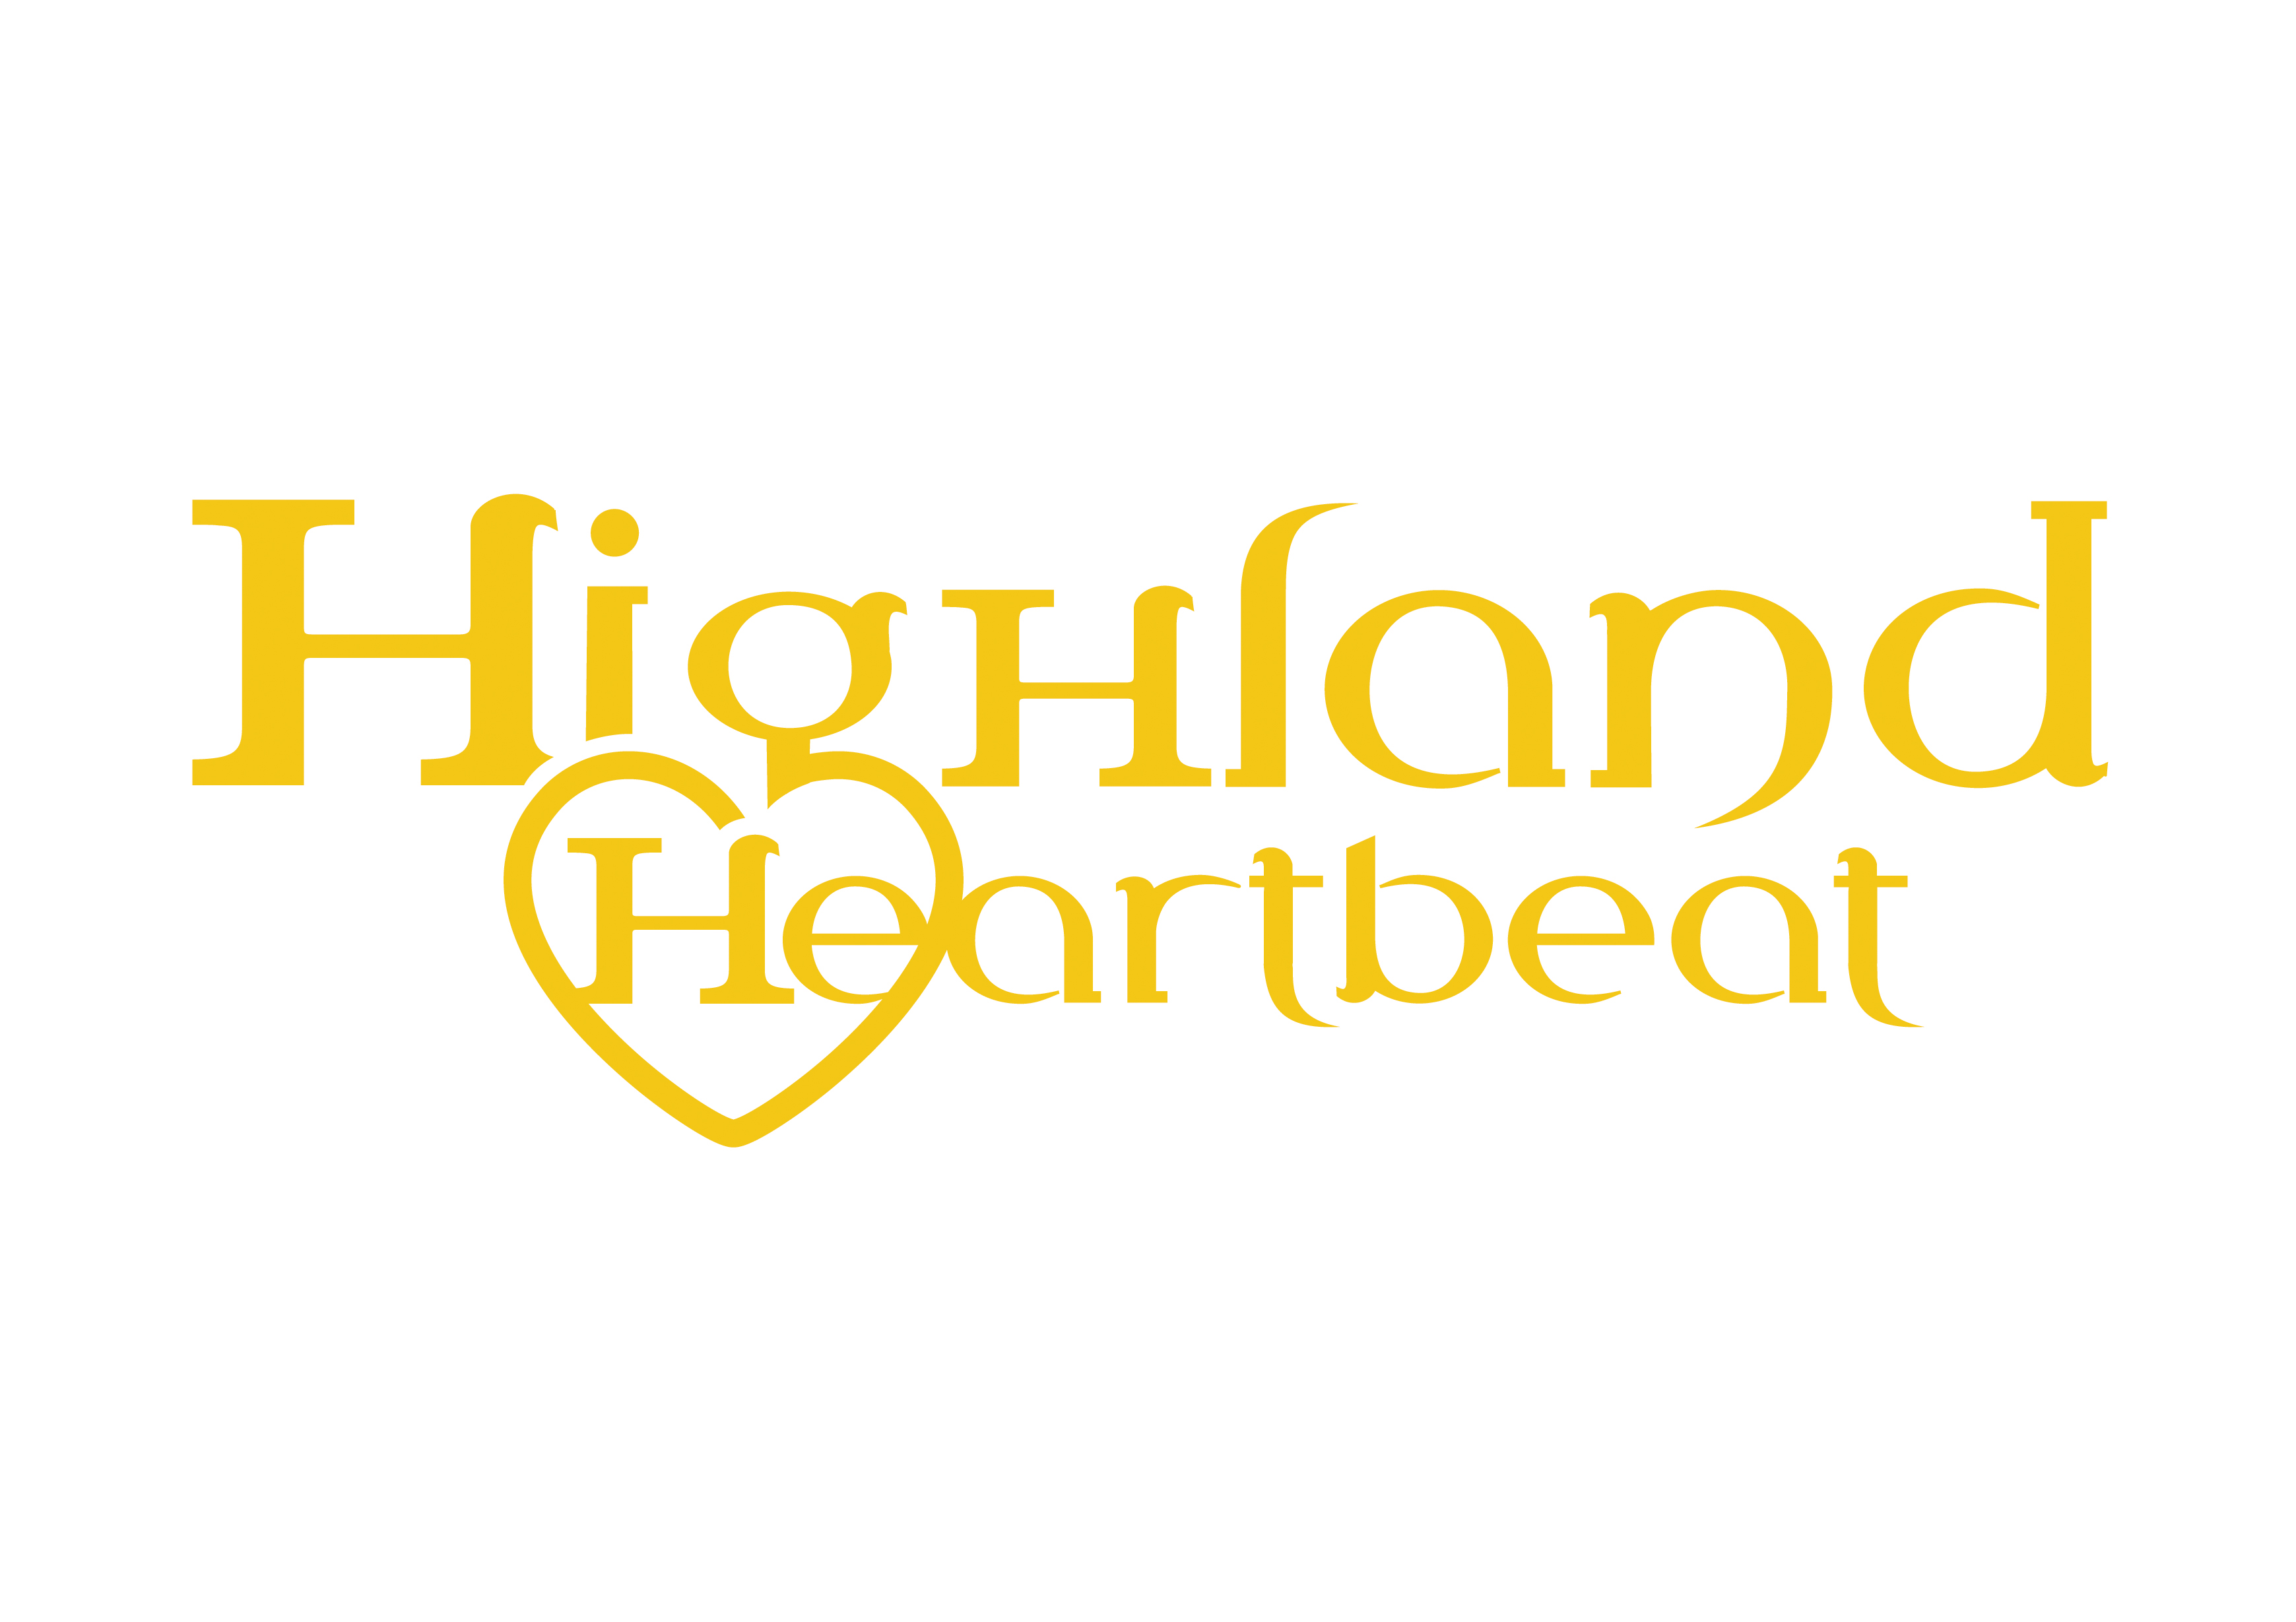 Show Highland Heartbeat Tickets